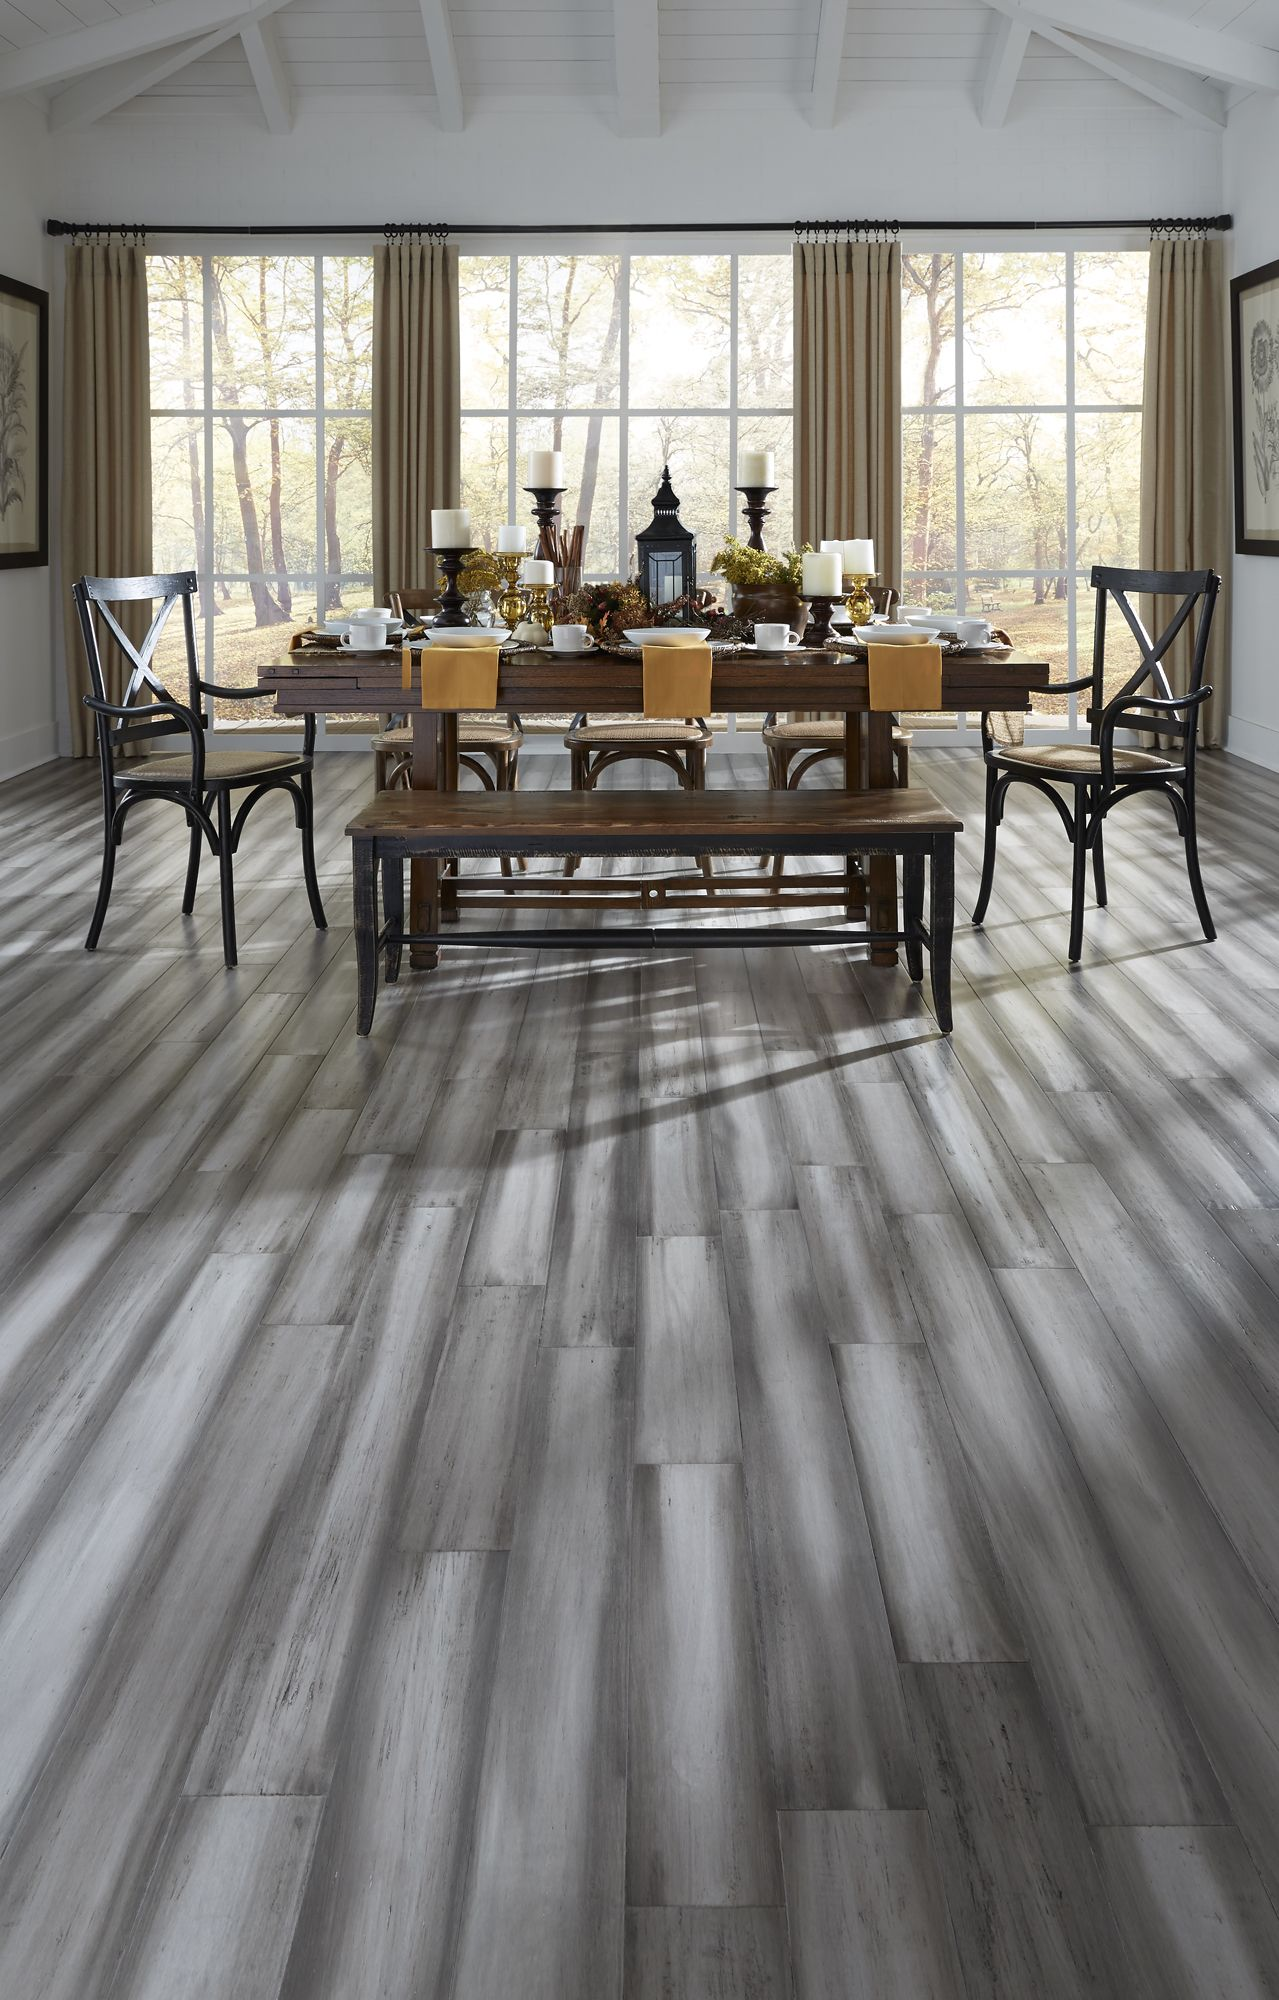 Modern Design And Rustic Texture Pair Perfectly With The Stately